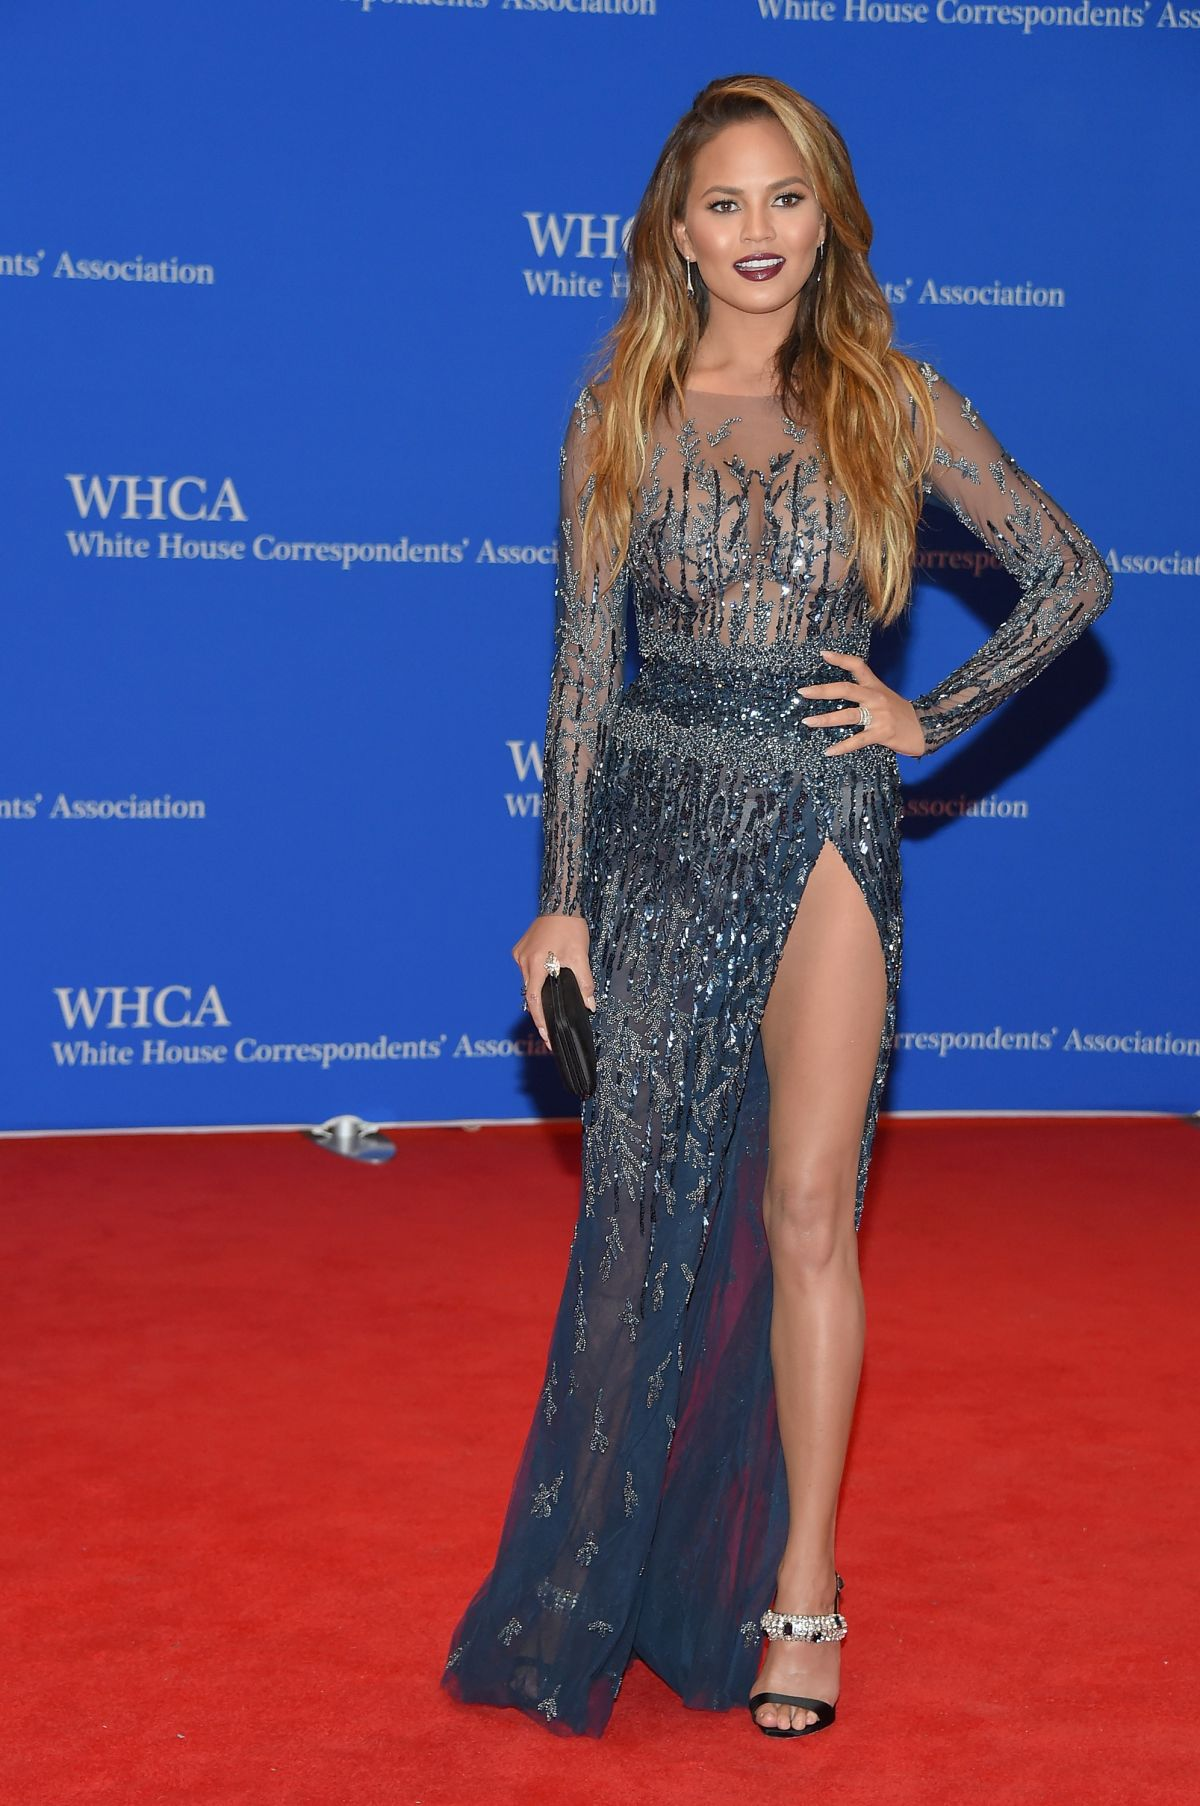 CHRISSY TEIGEN at White House Communications Agency Dinner in Washington